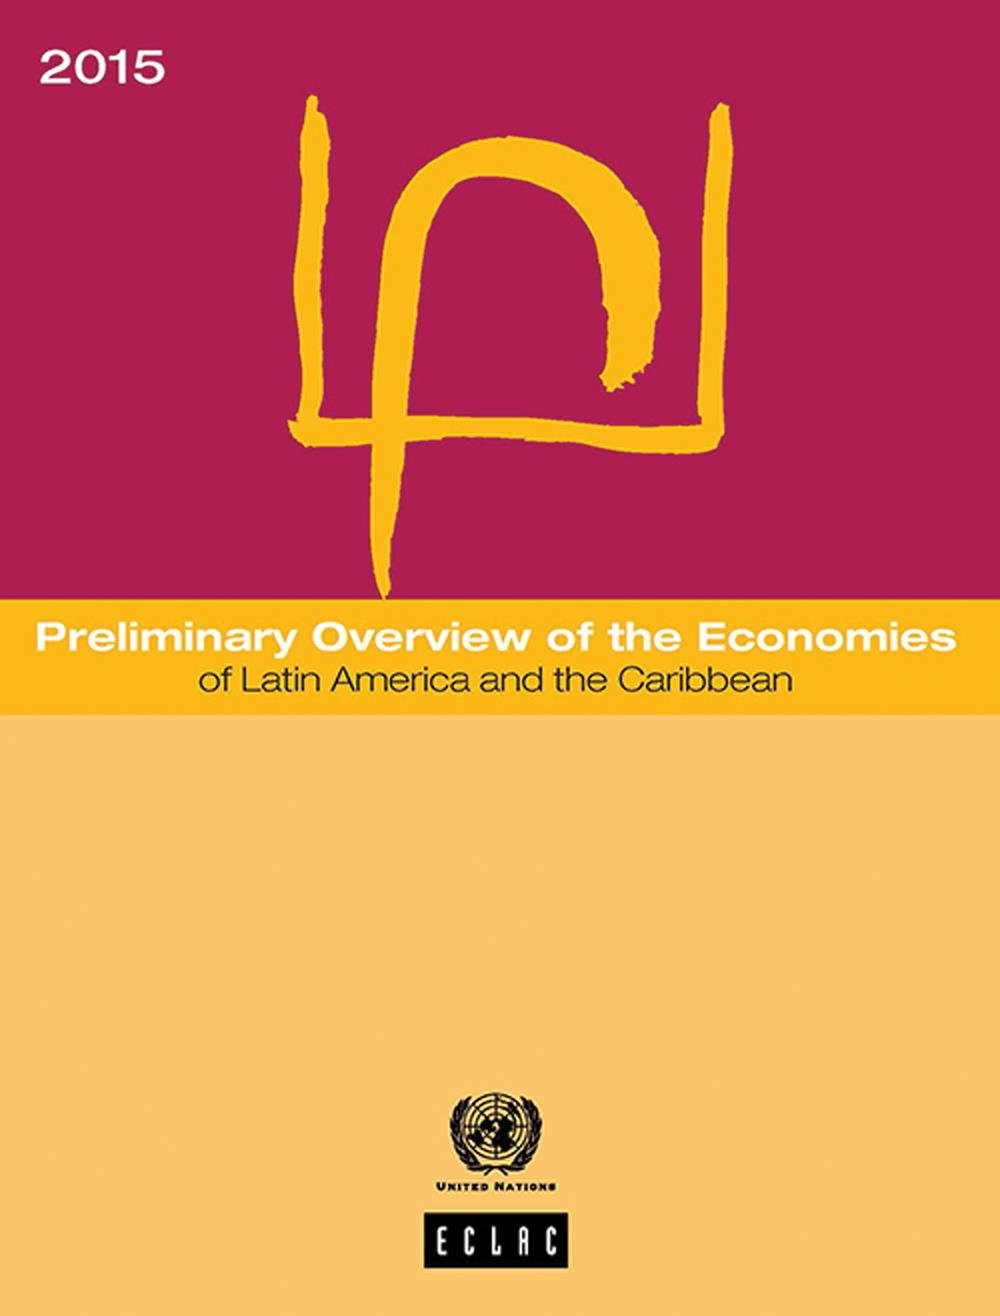 Preliminary Overview of the Economies of Latin America and the Caribbean 2015 (Preliminary overview of the economy of Latin America and the Caribbean)